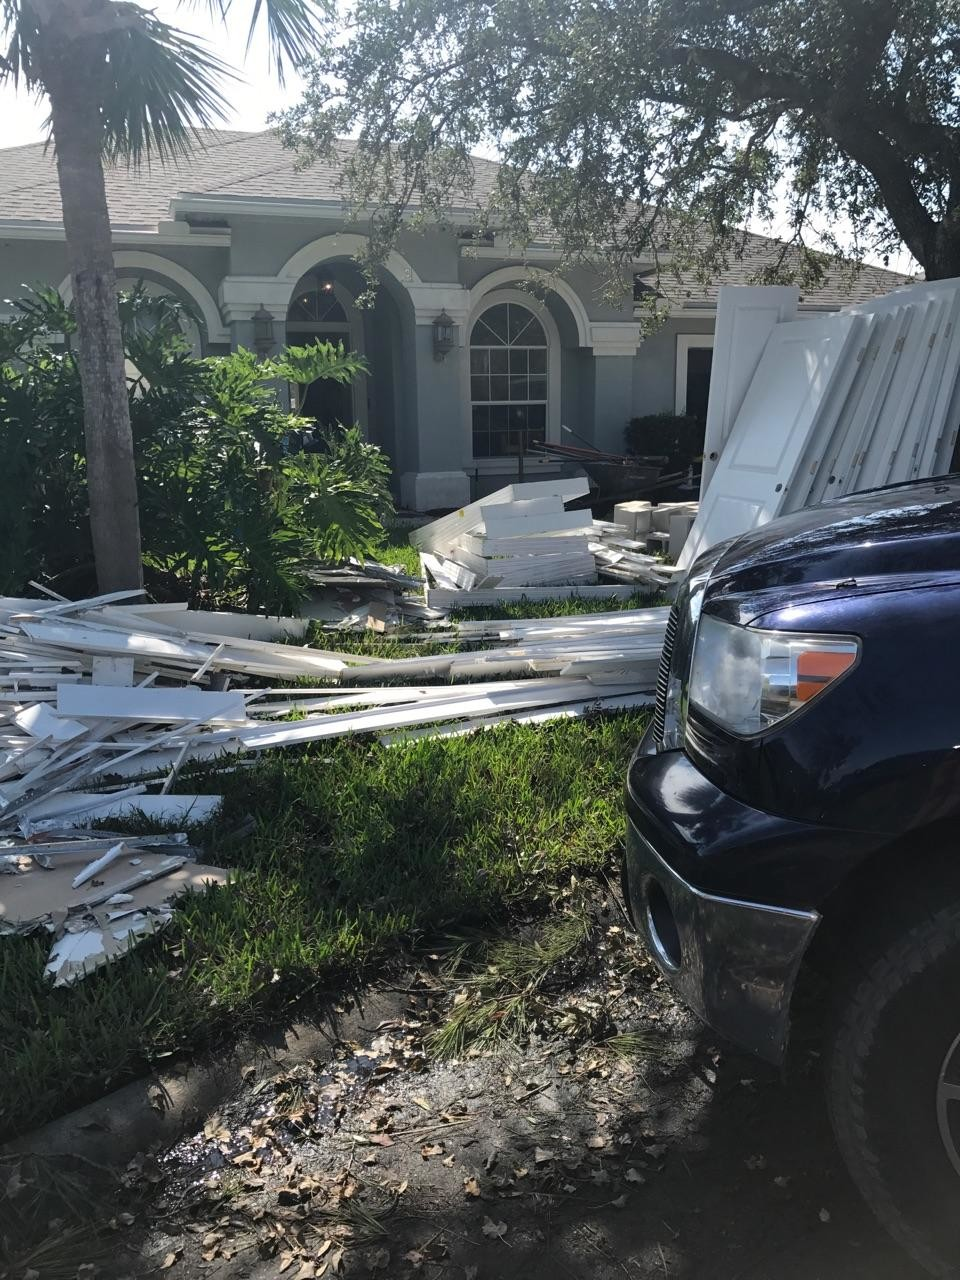 The Storck home is being rebuilt following Irma.